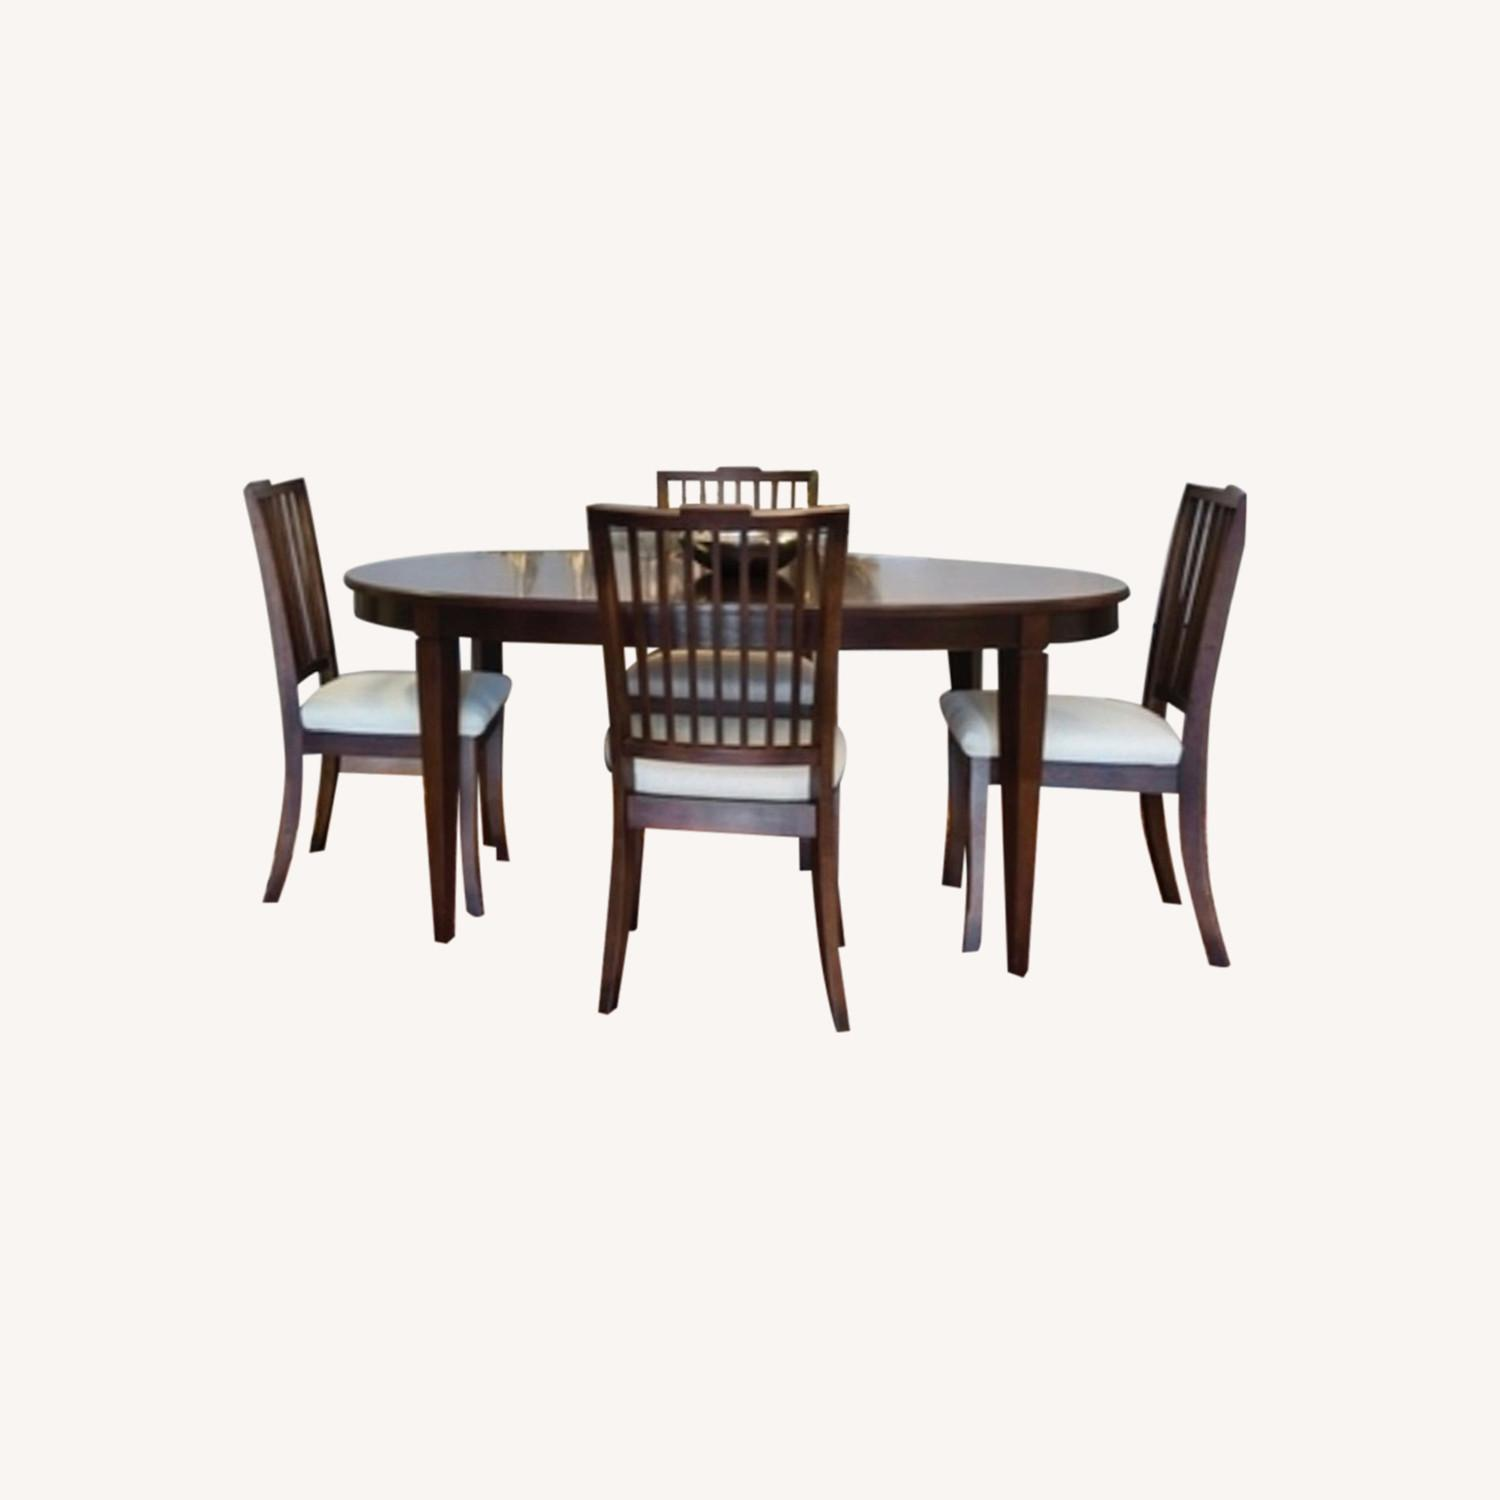 Dining Room Table - image-0